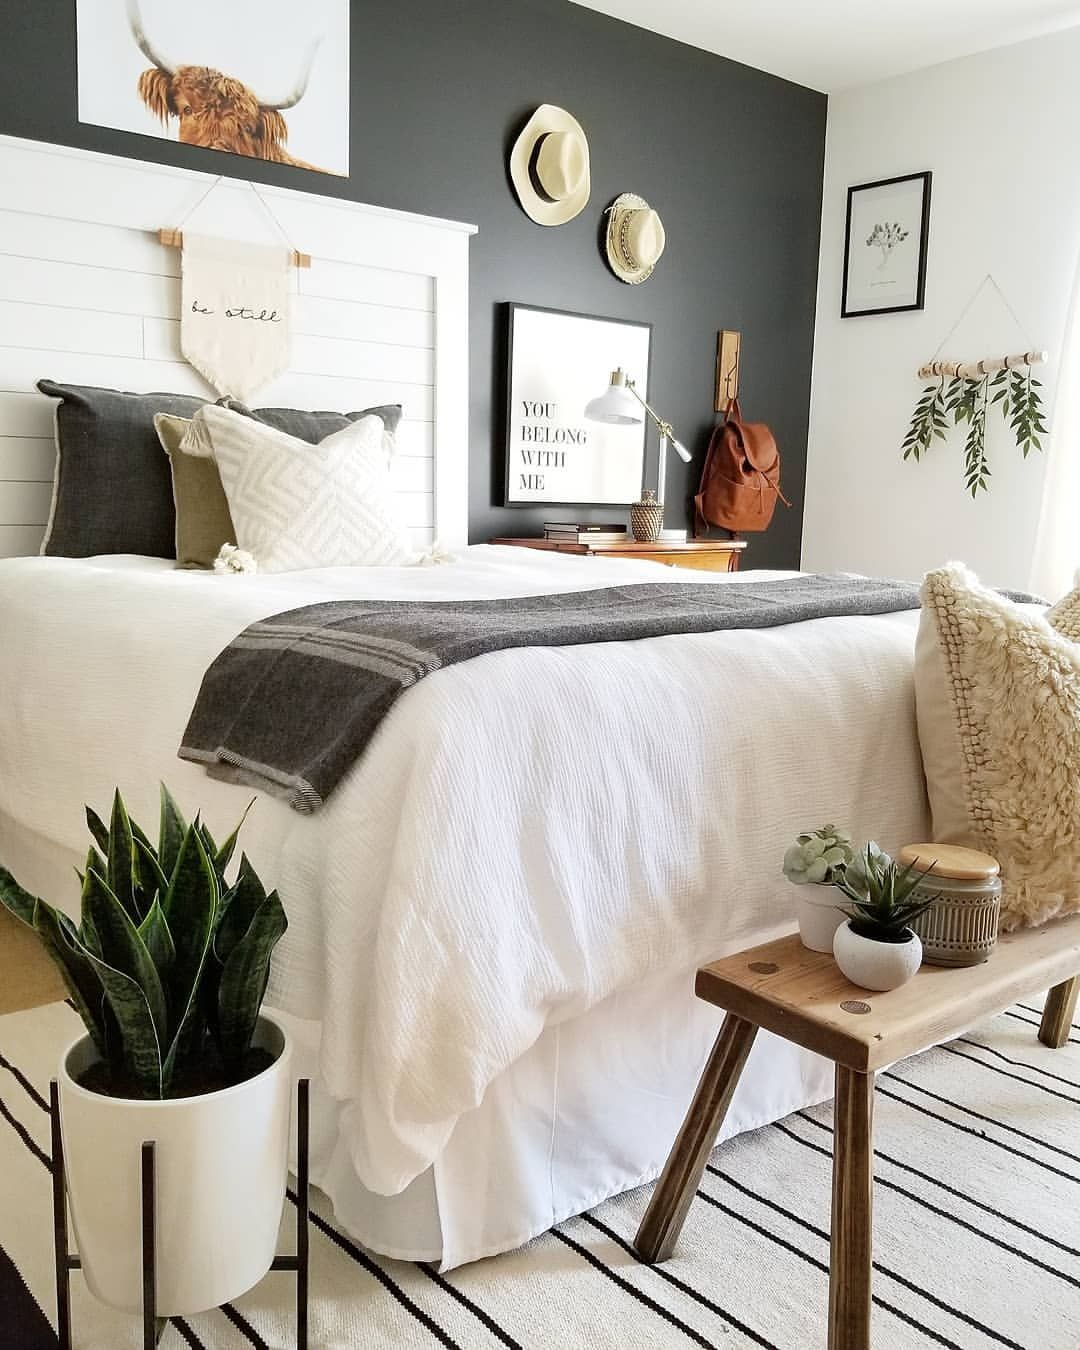 Scandinavian Bedroom Curtains Bedroom Chandeliers Menards Bedroom Athletics Mule Slippers Bedroom Colour Combination: Time To Order The Table Lamp That Will Make A Statement In